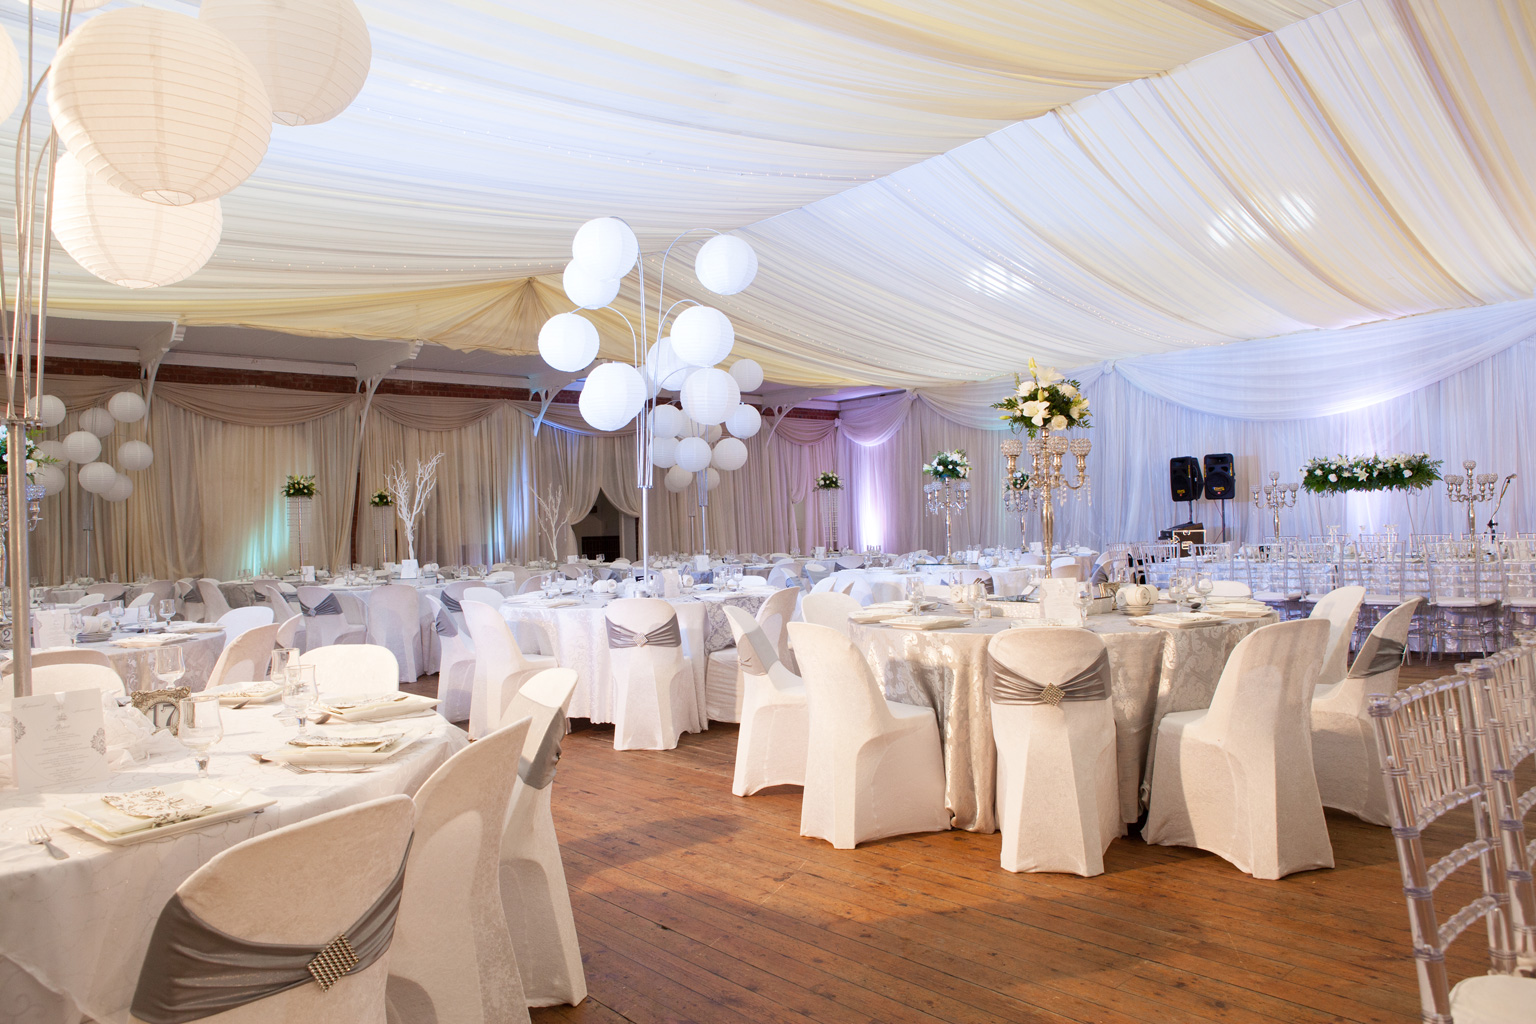 hall muslim Find, research and contact wedding ceremony venues in streamwood on the knot, featuring reviews and info on the best wedding vendors.